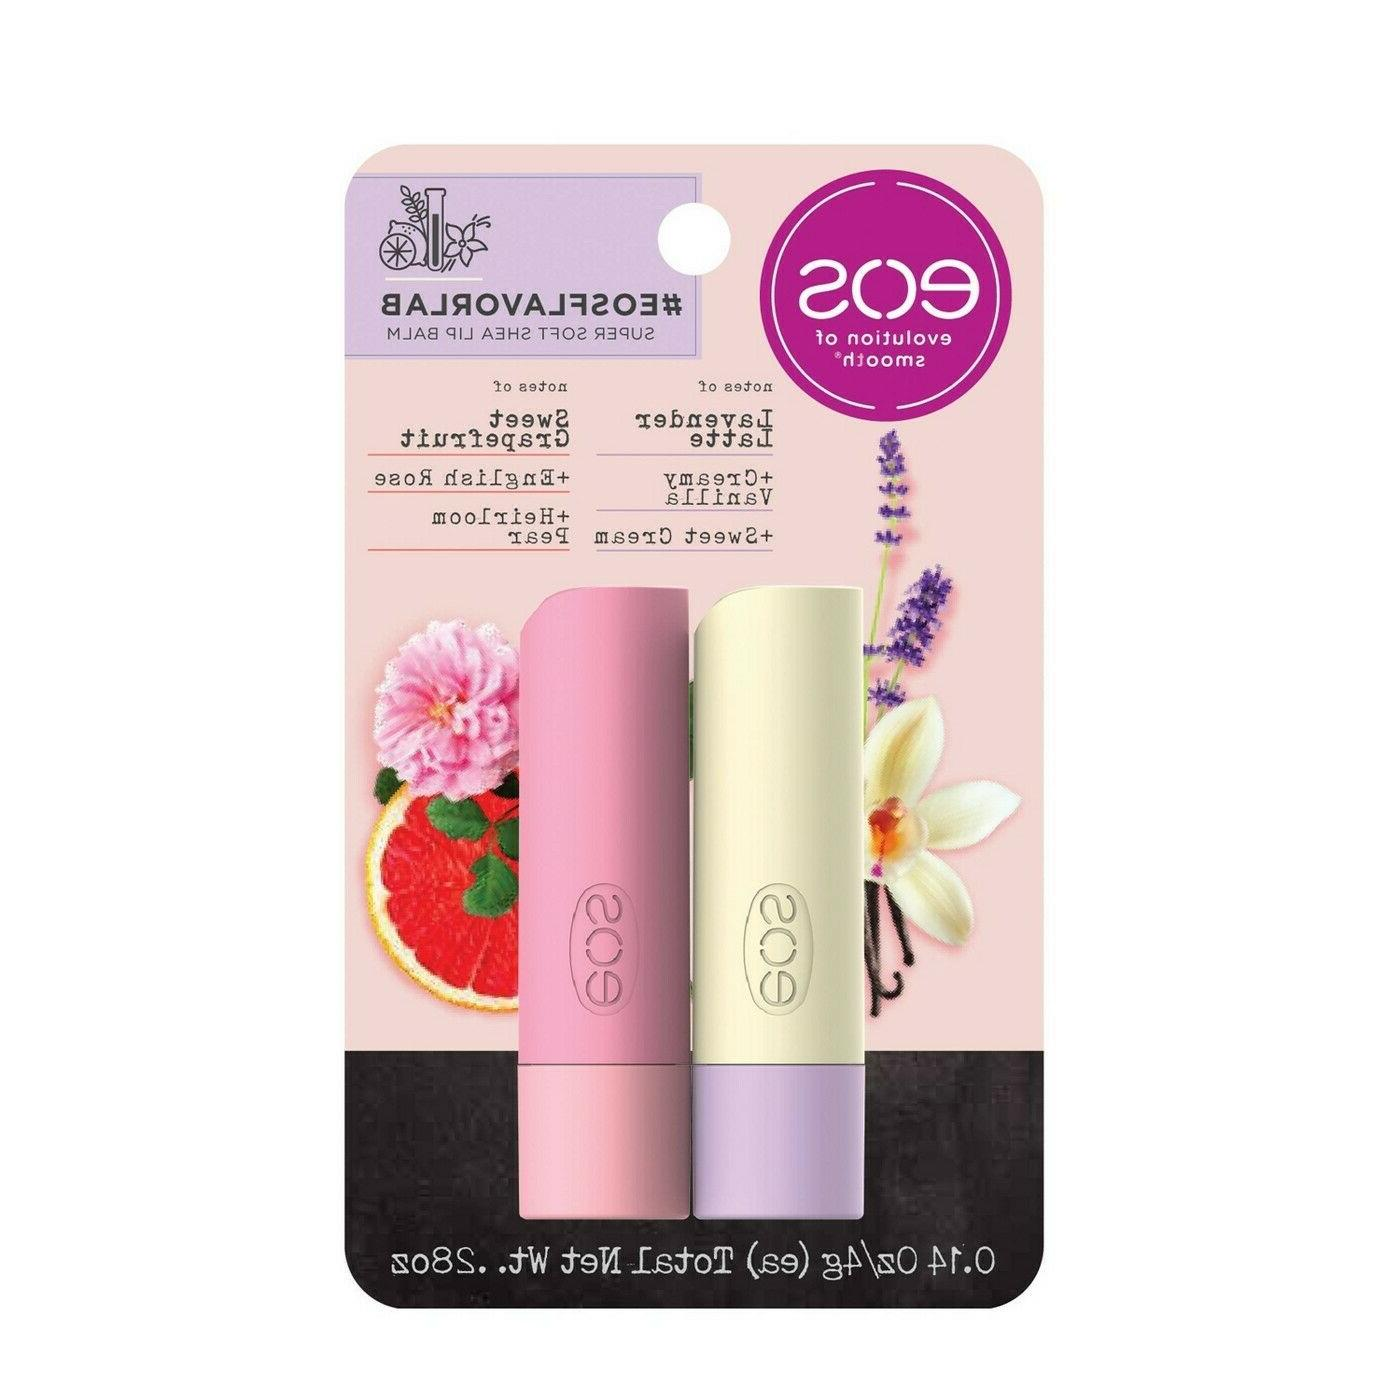 x2 lip balm sticks lavender latte vanilla